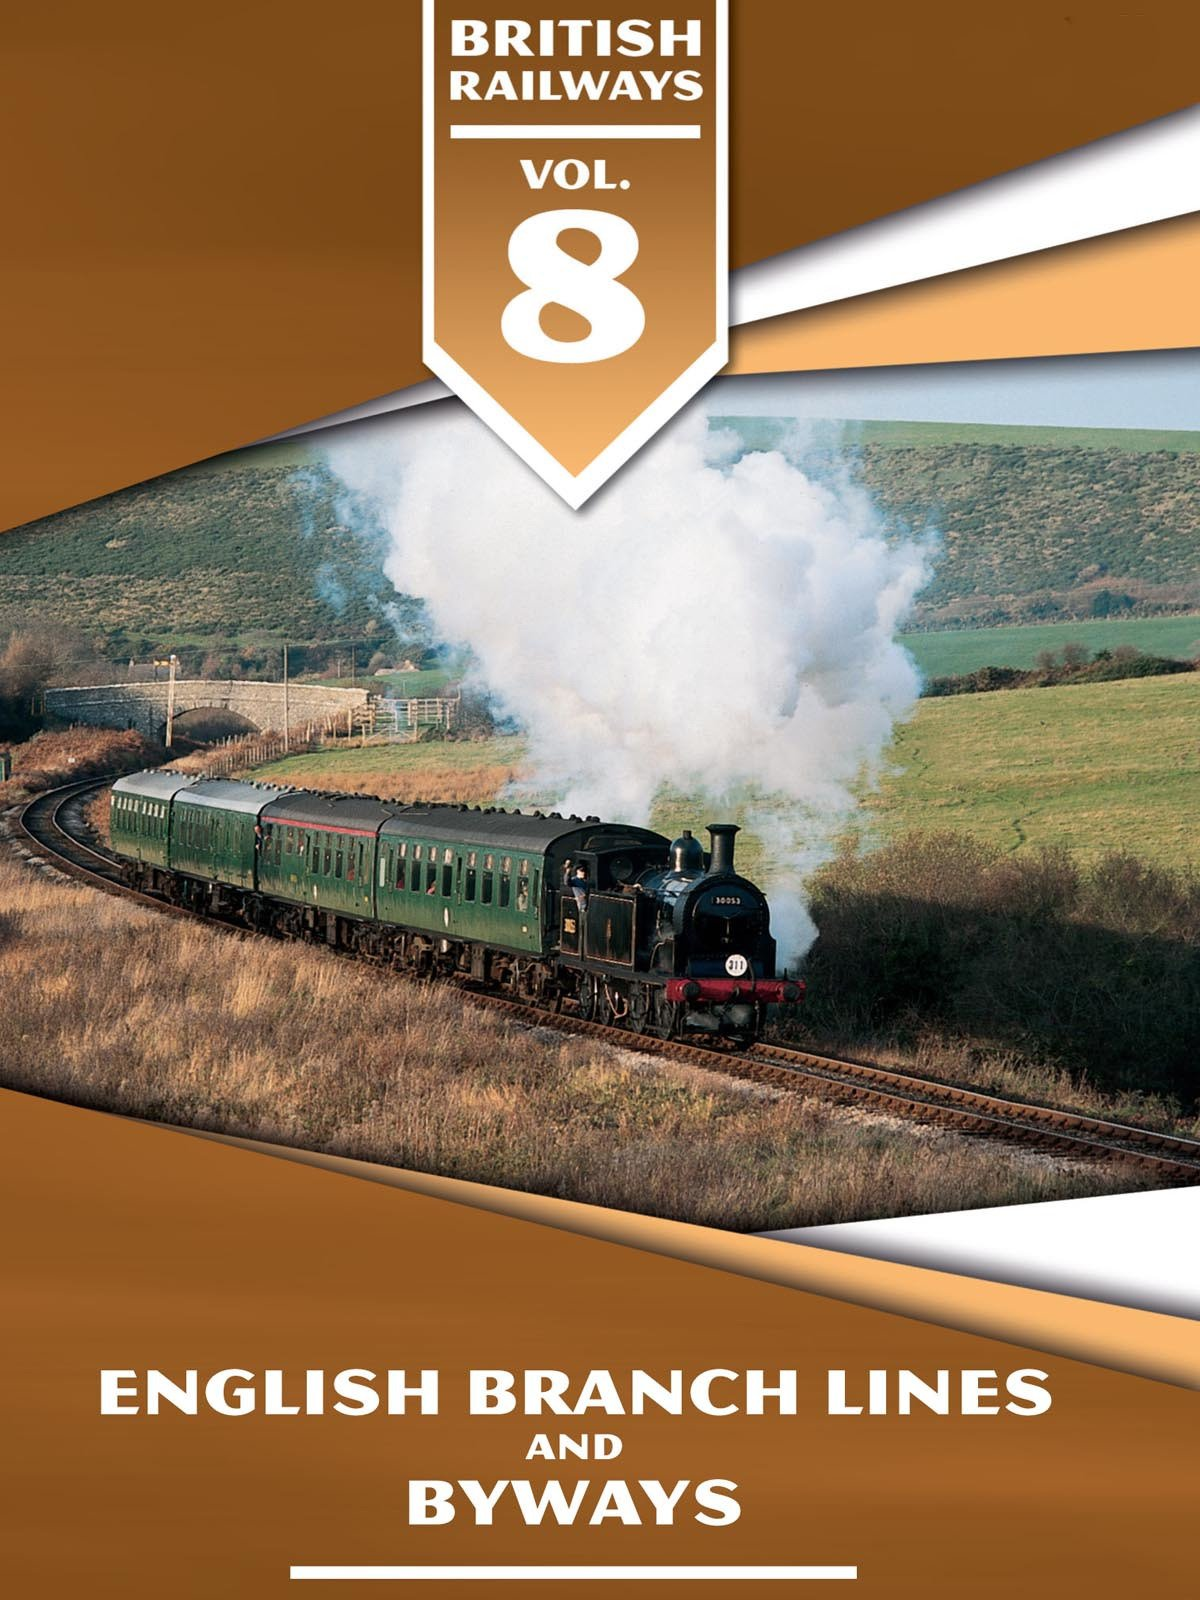 British Railways Volume 8: English Branch Lines and Byways